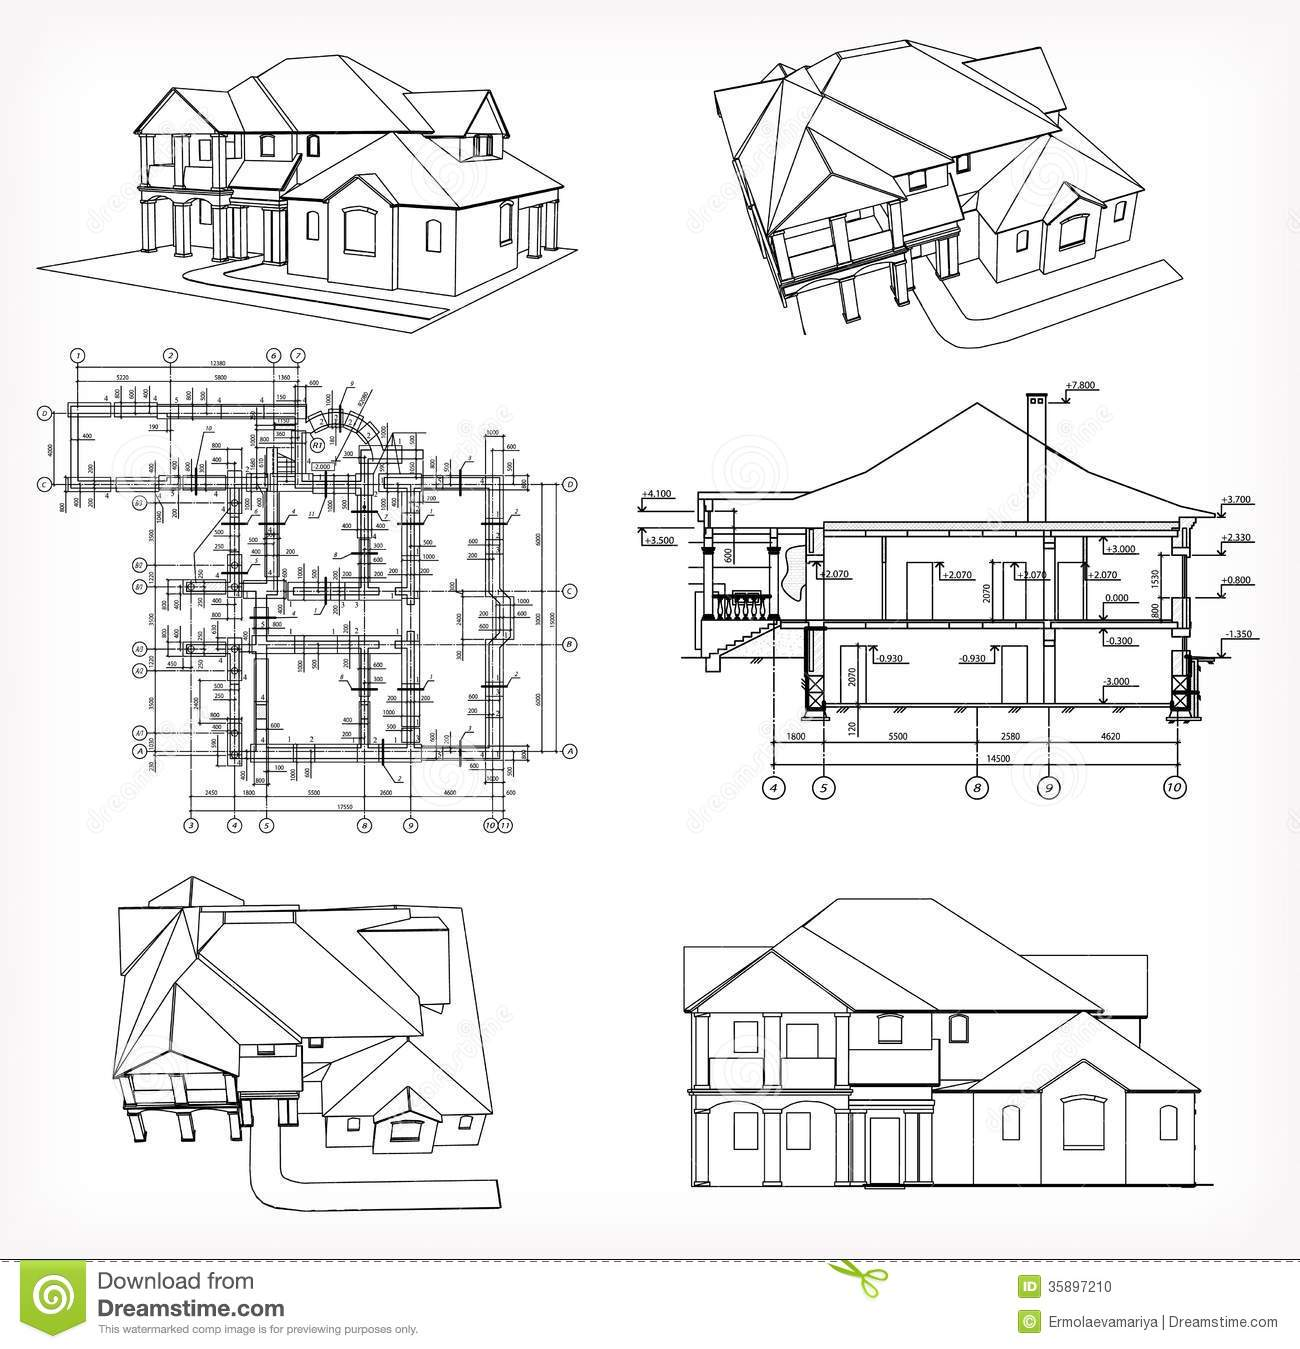 New blueprint of my house architecture nice new blueprint of my house malvernweather Image collections